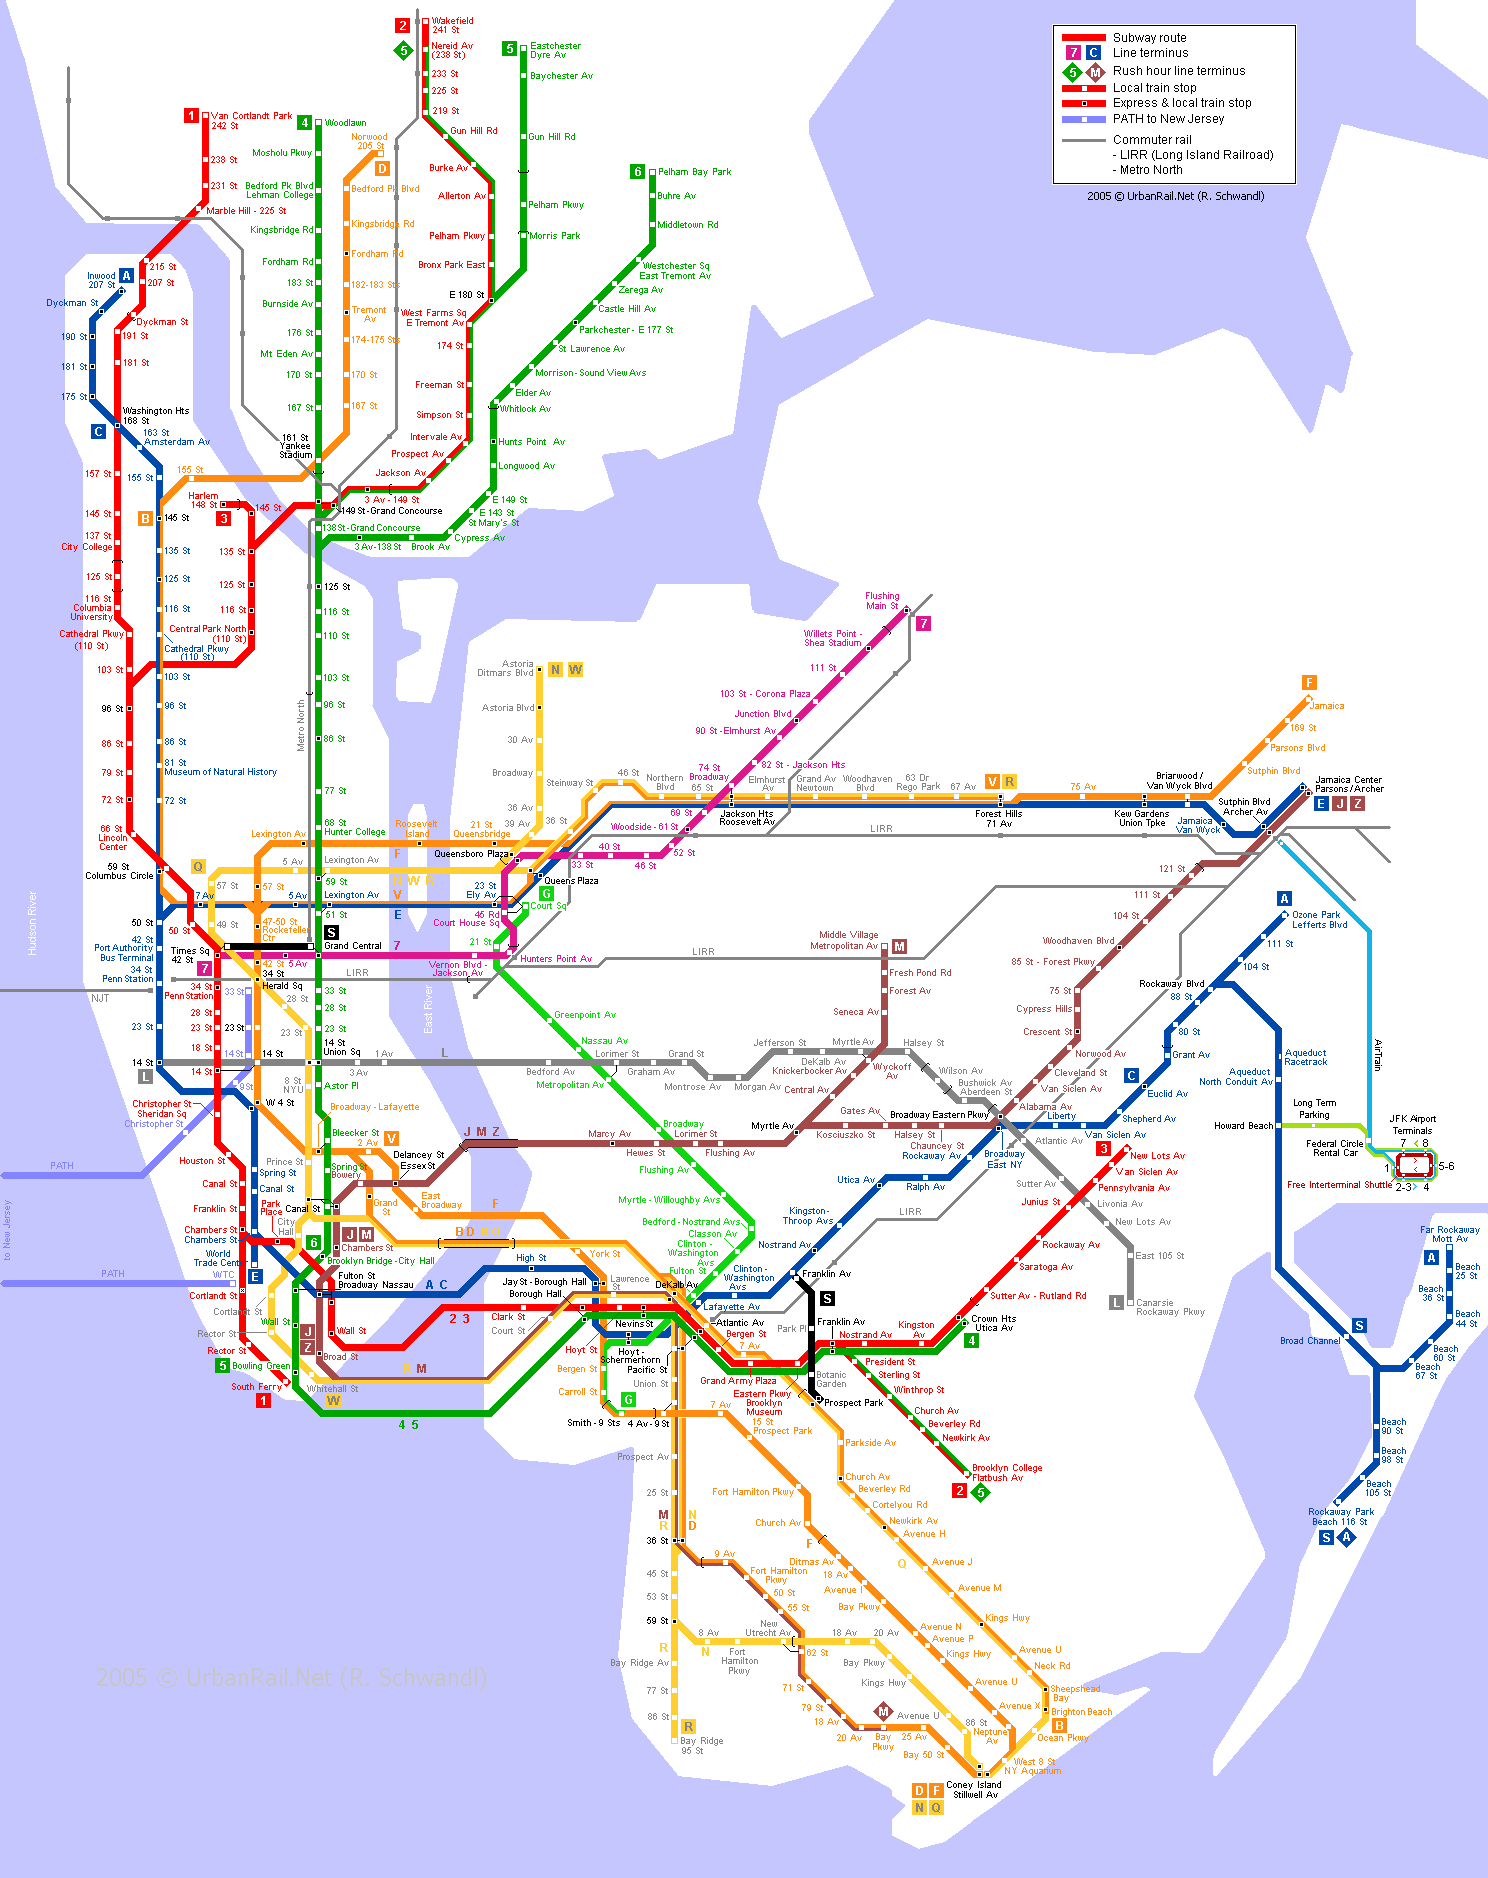 Metro New York Map New York Subway Map for Download | Metro in New York   High